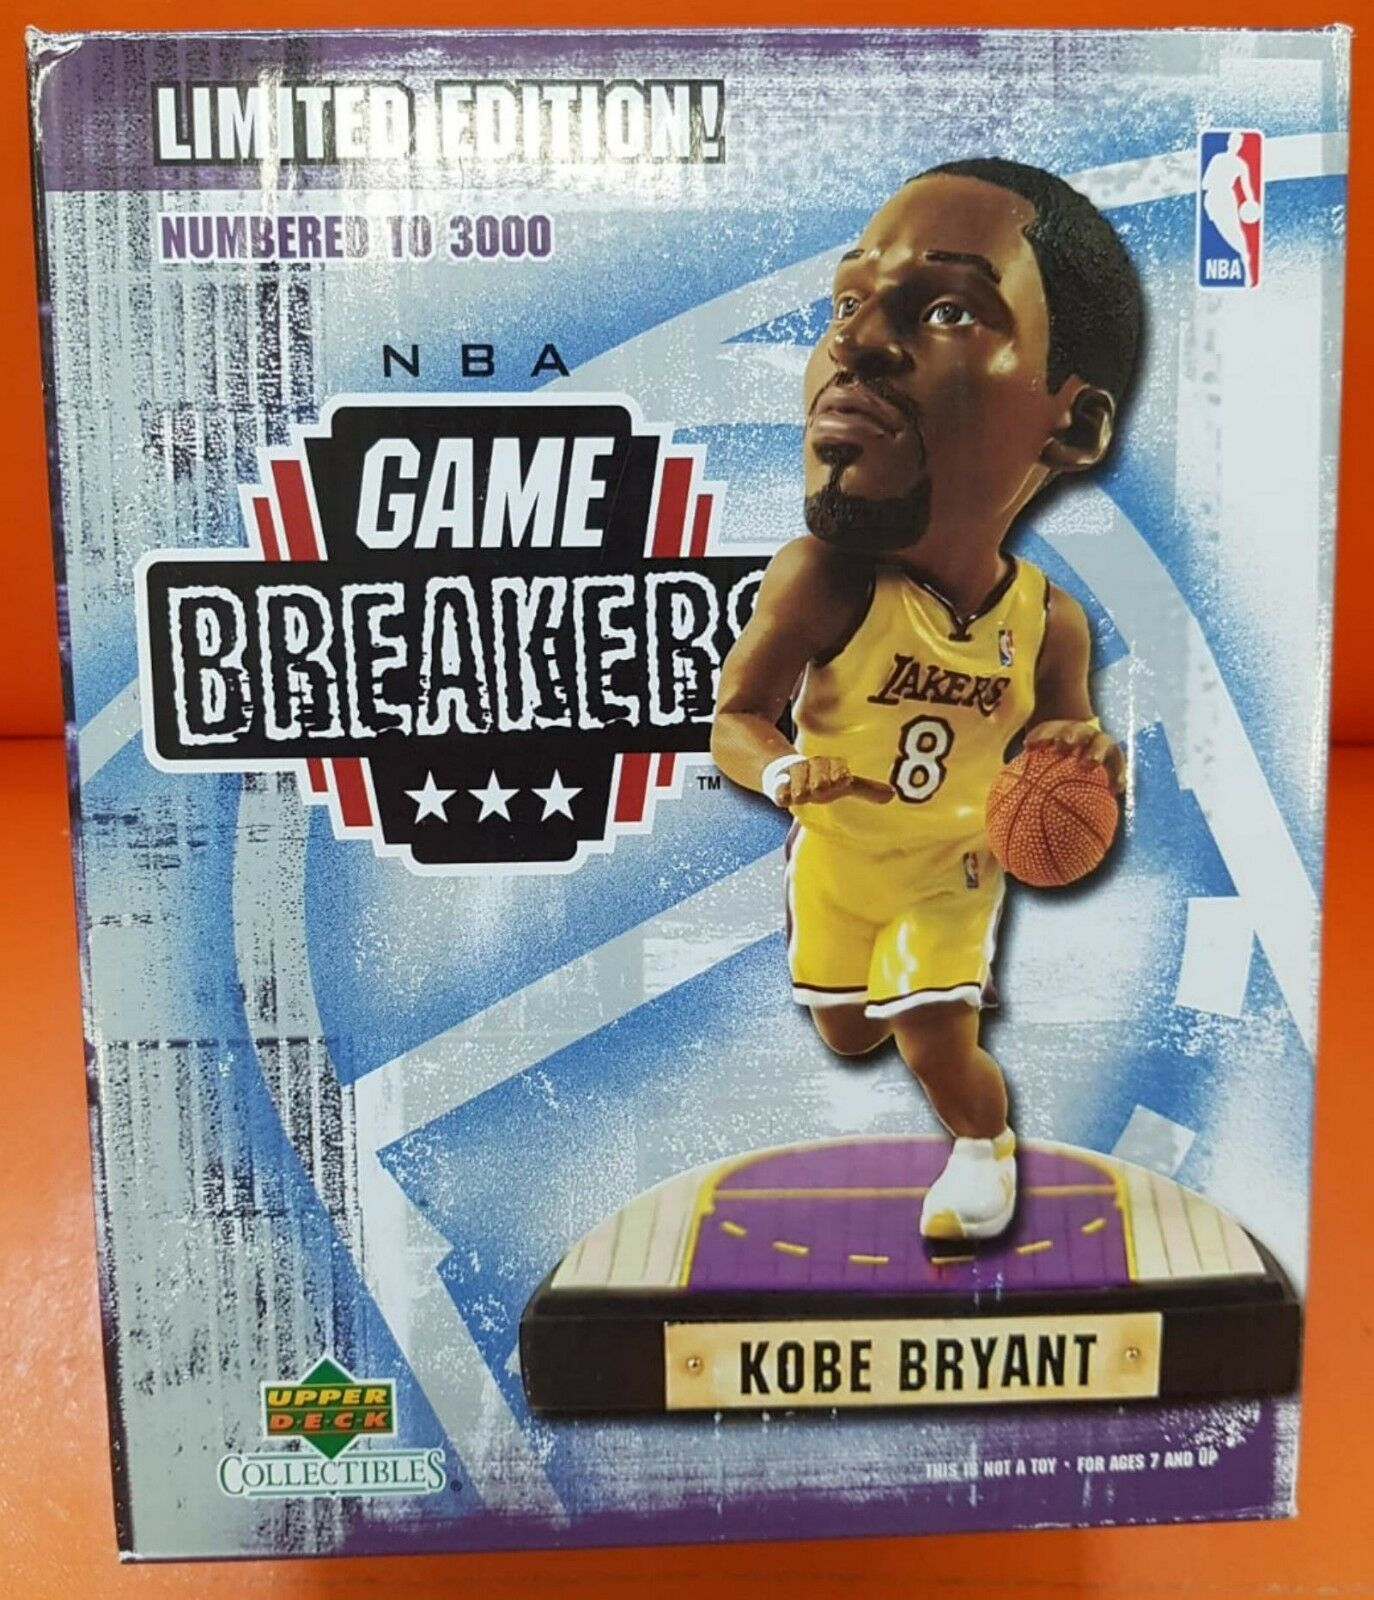 NBA Game Breakers Kobe Bryant Limited Edition Numbered Ed 3000 figures